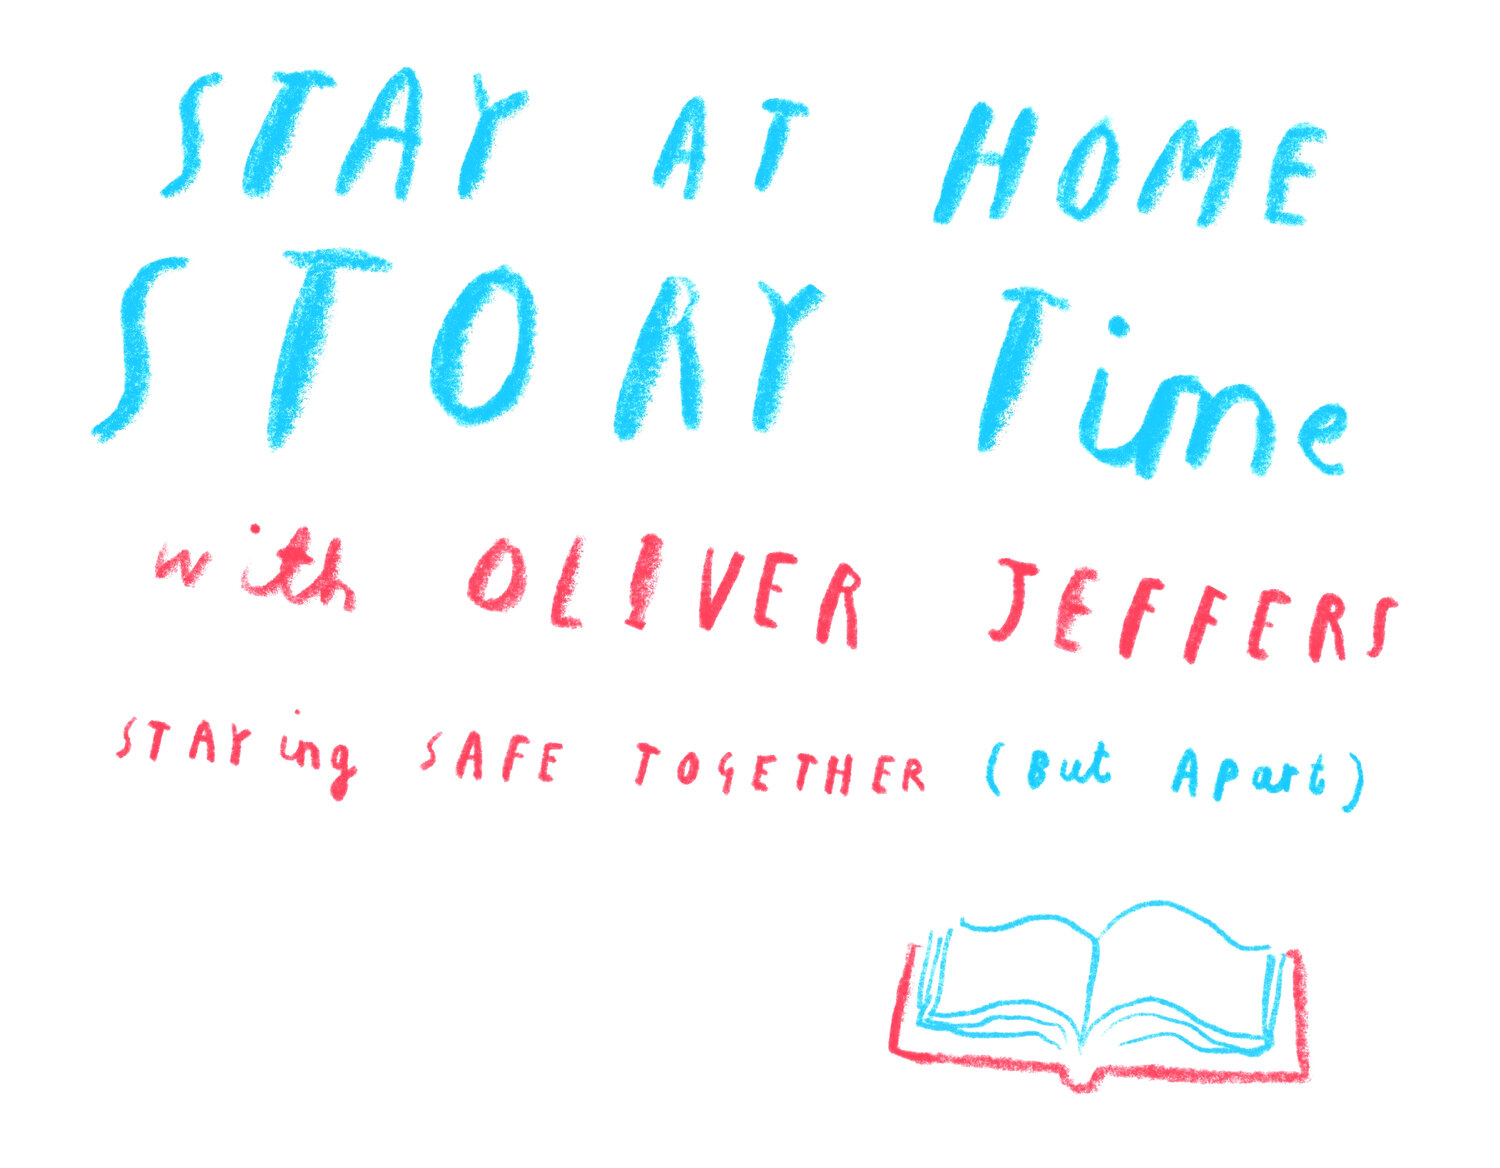 storytime with oliver jeffers logo